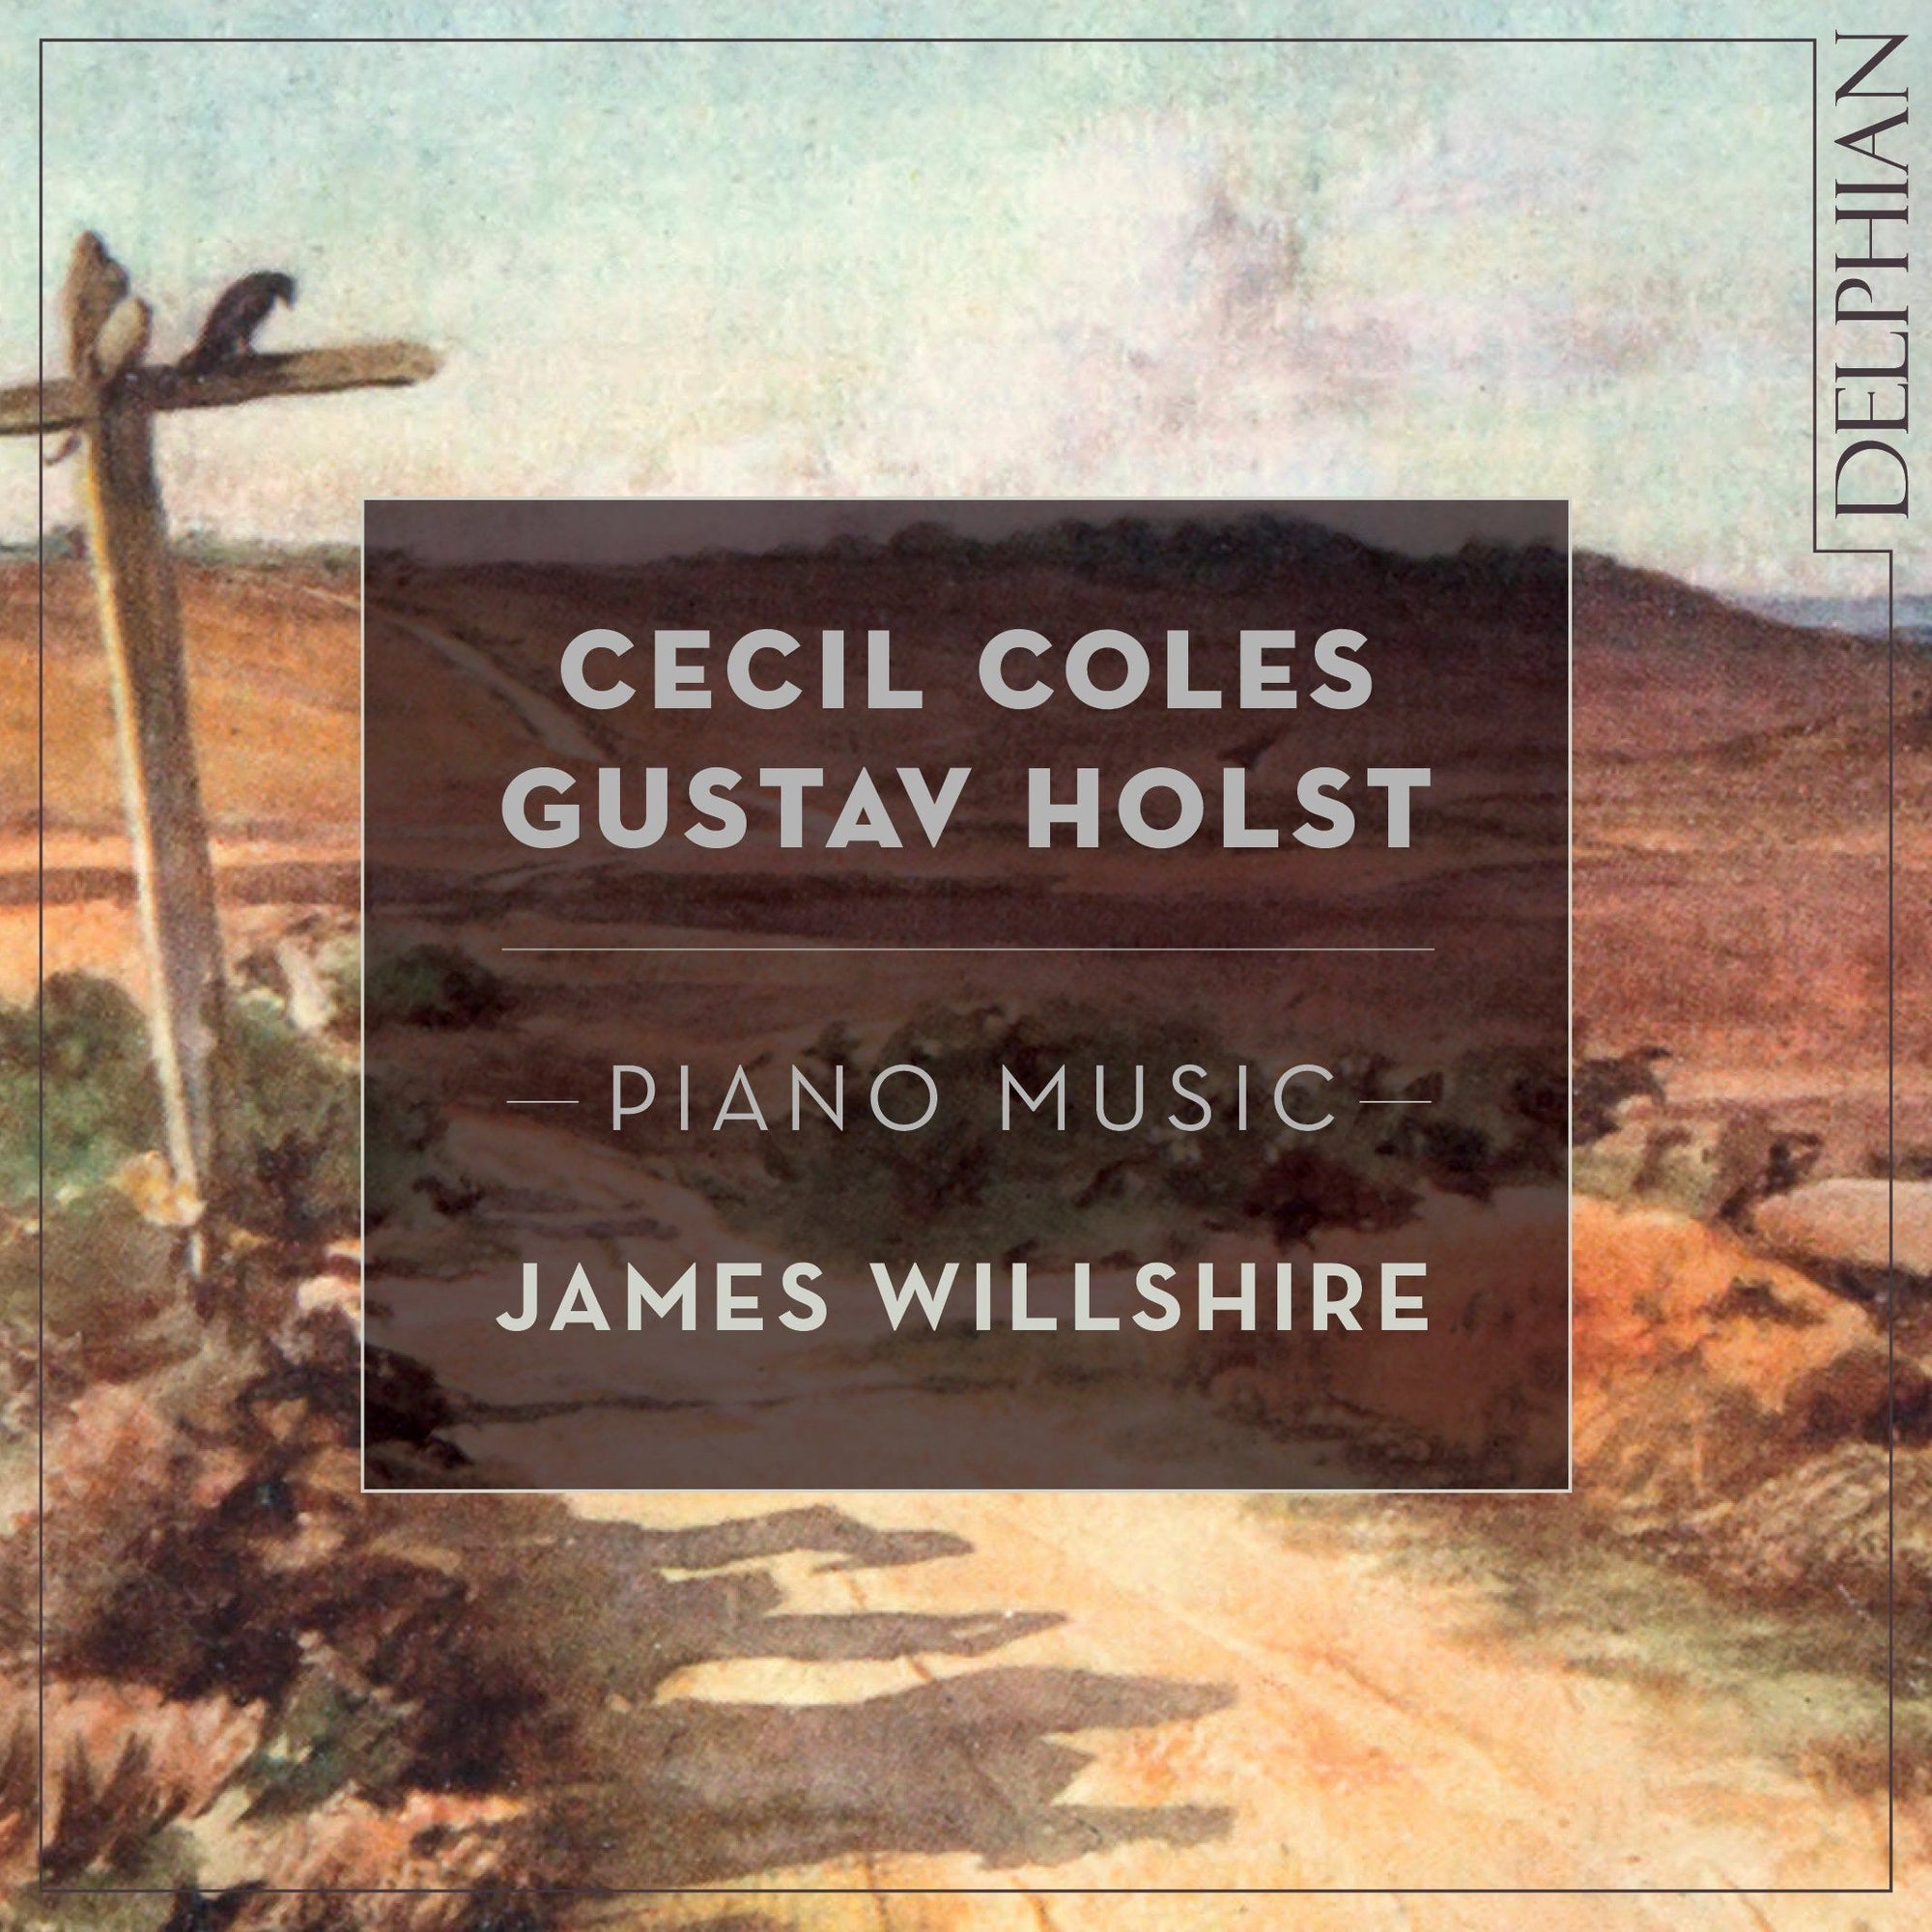 Cecil Coles, Gustav Holst: Piano Music Delphian Records